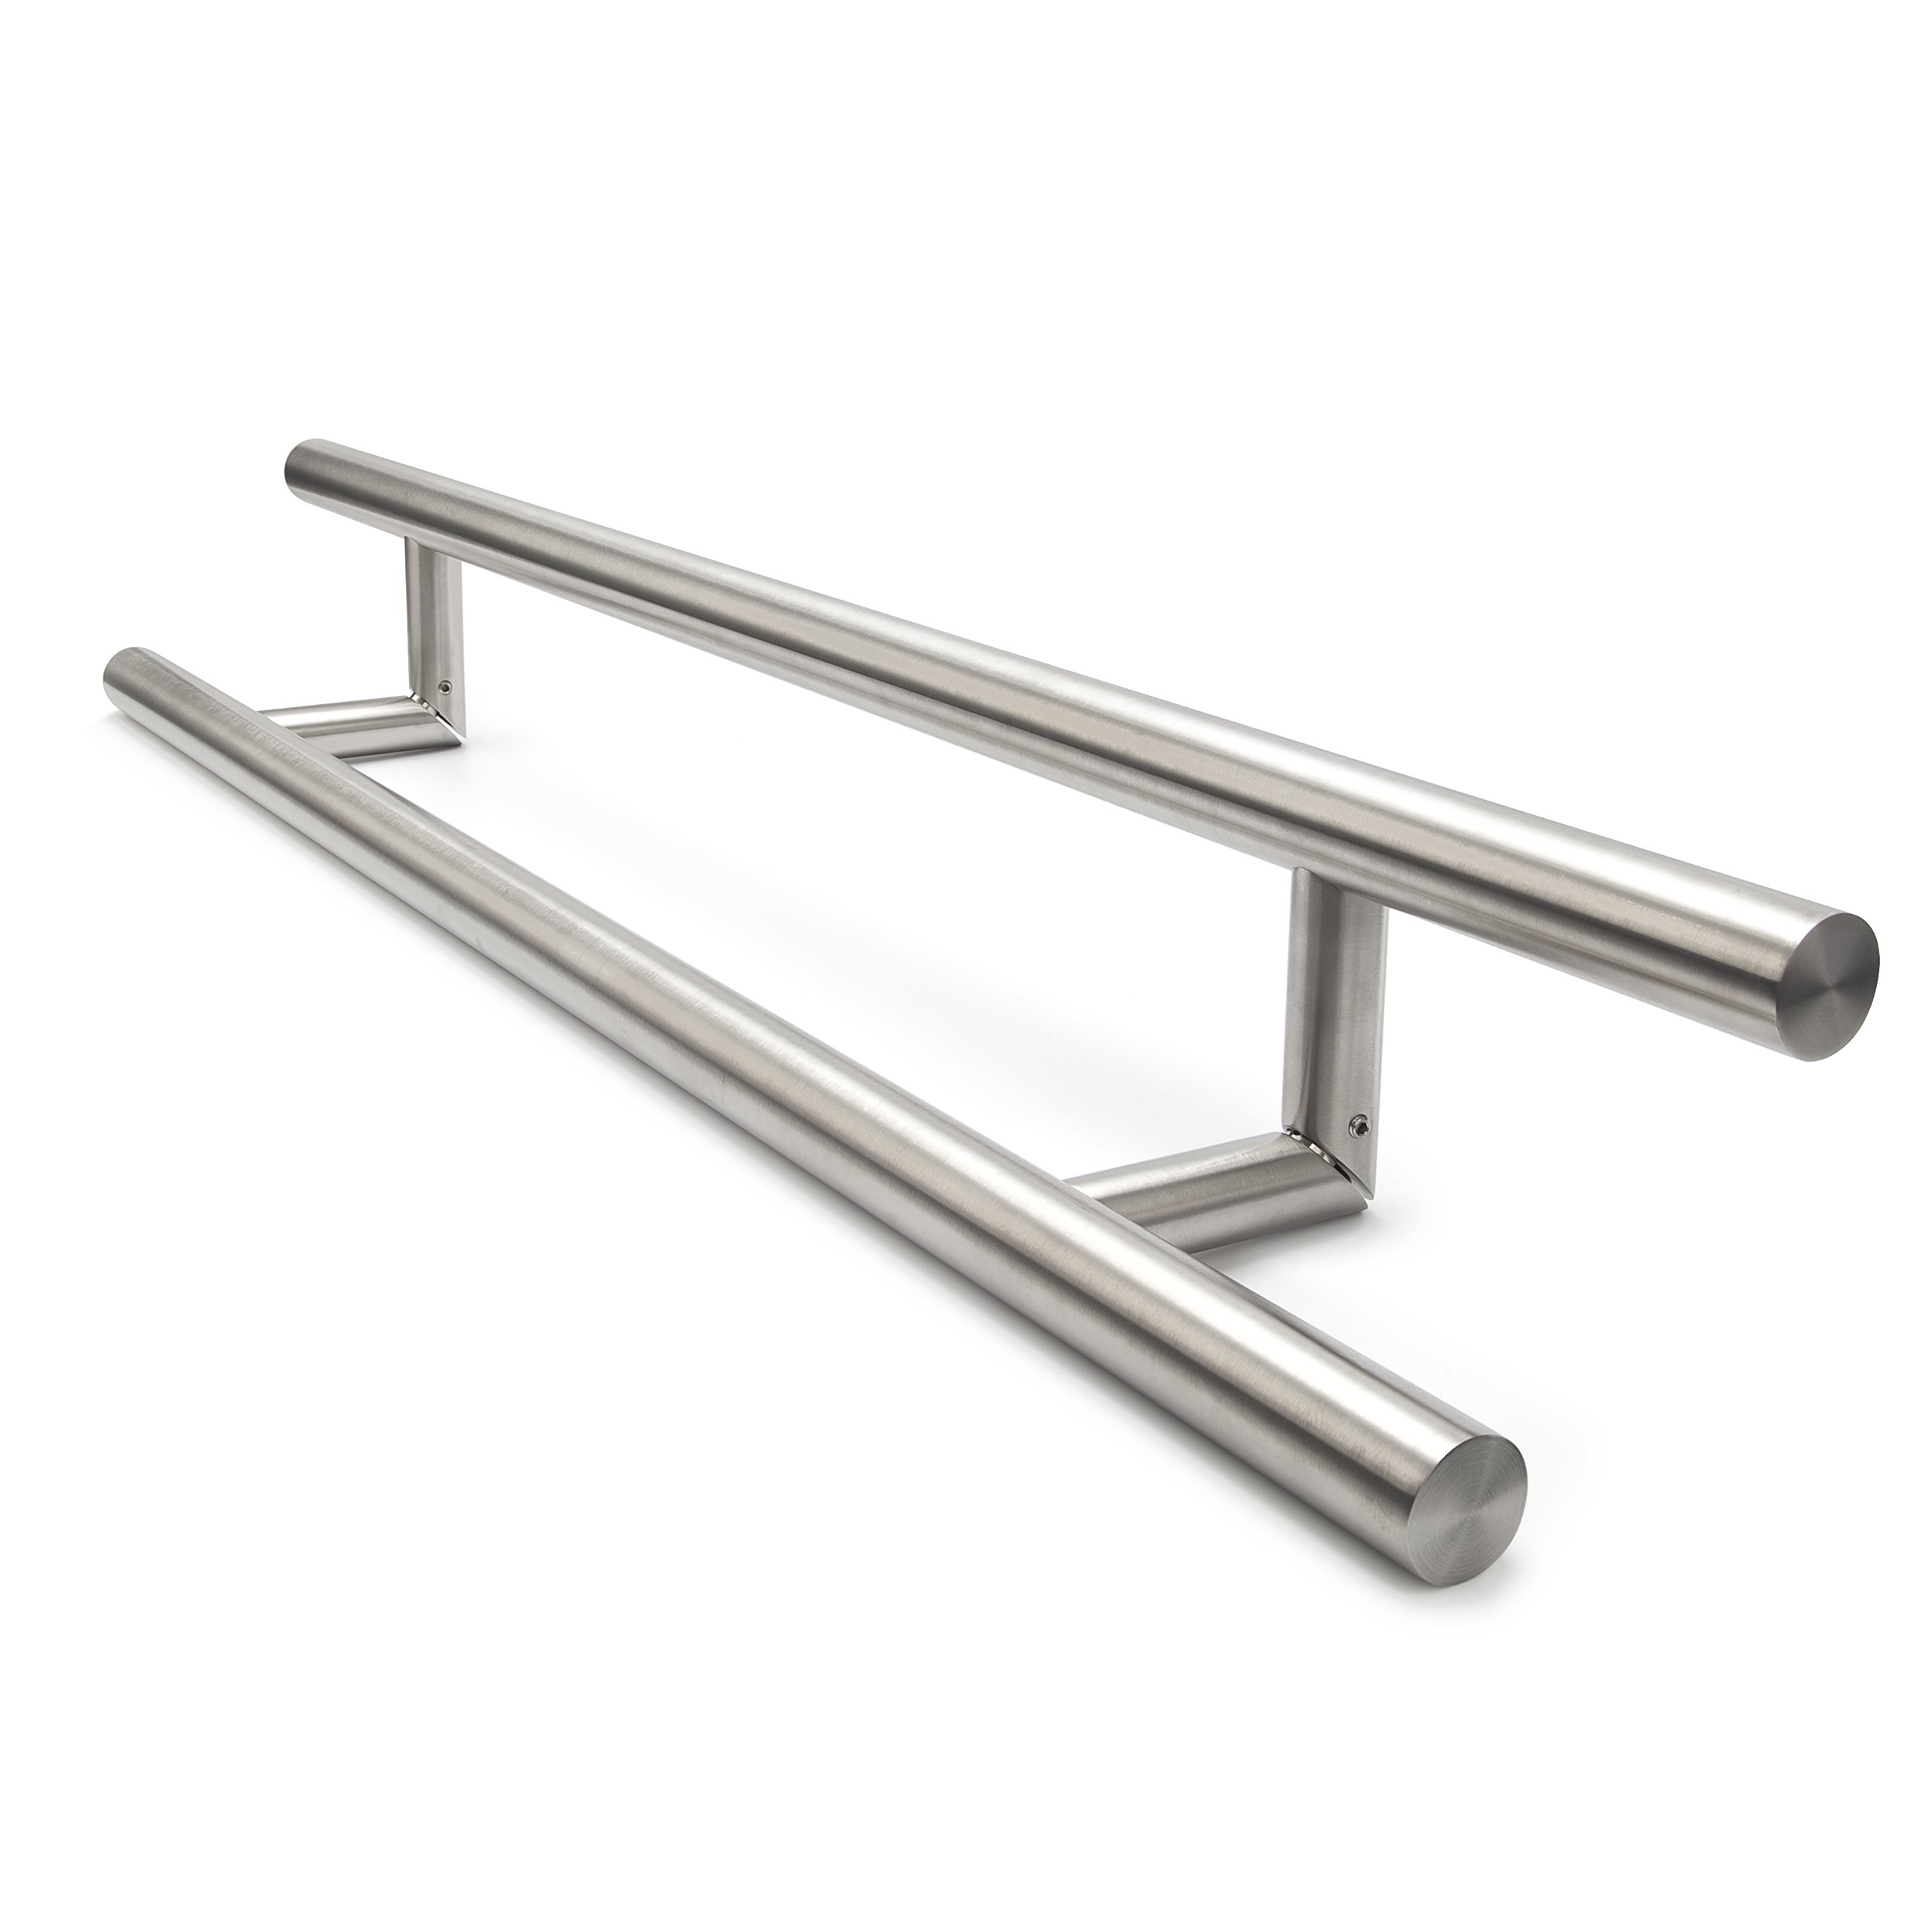 O-104 Oblique Modern Stainless Steel Sus304 Entrance Entry Commercial Office Store Front Wood Timber Glass Garage Aluminum Business Office Door Pull Push Handles Double-sided (48 Inches /1200x32mm)